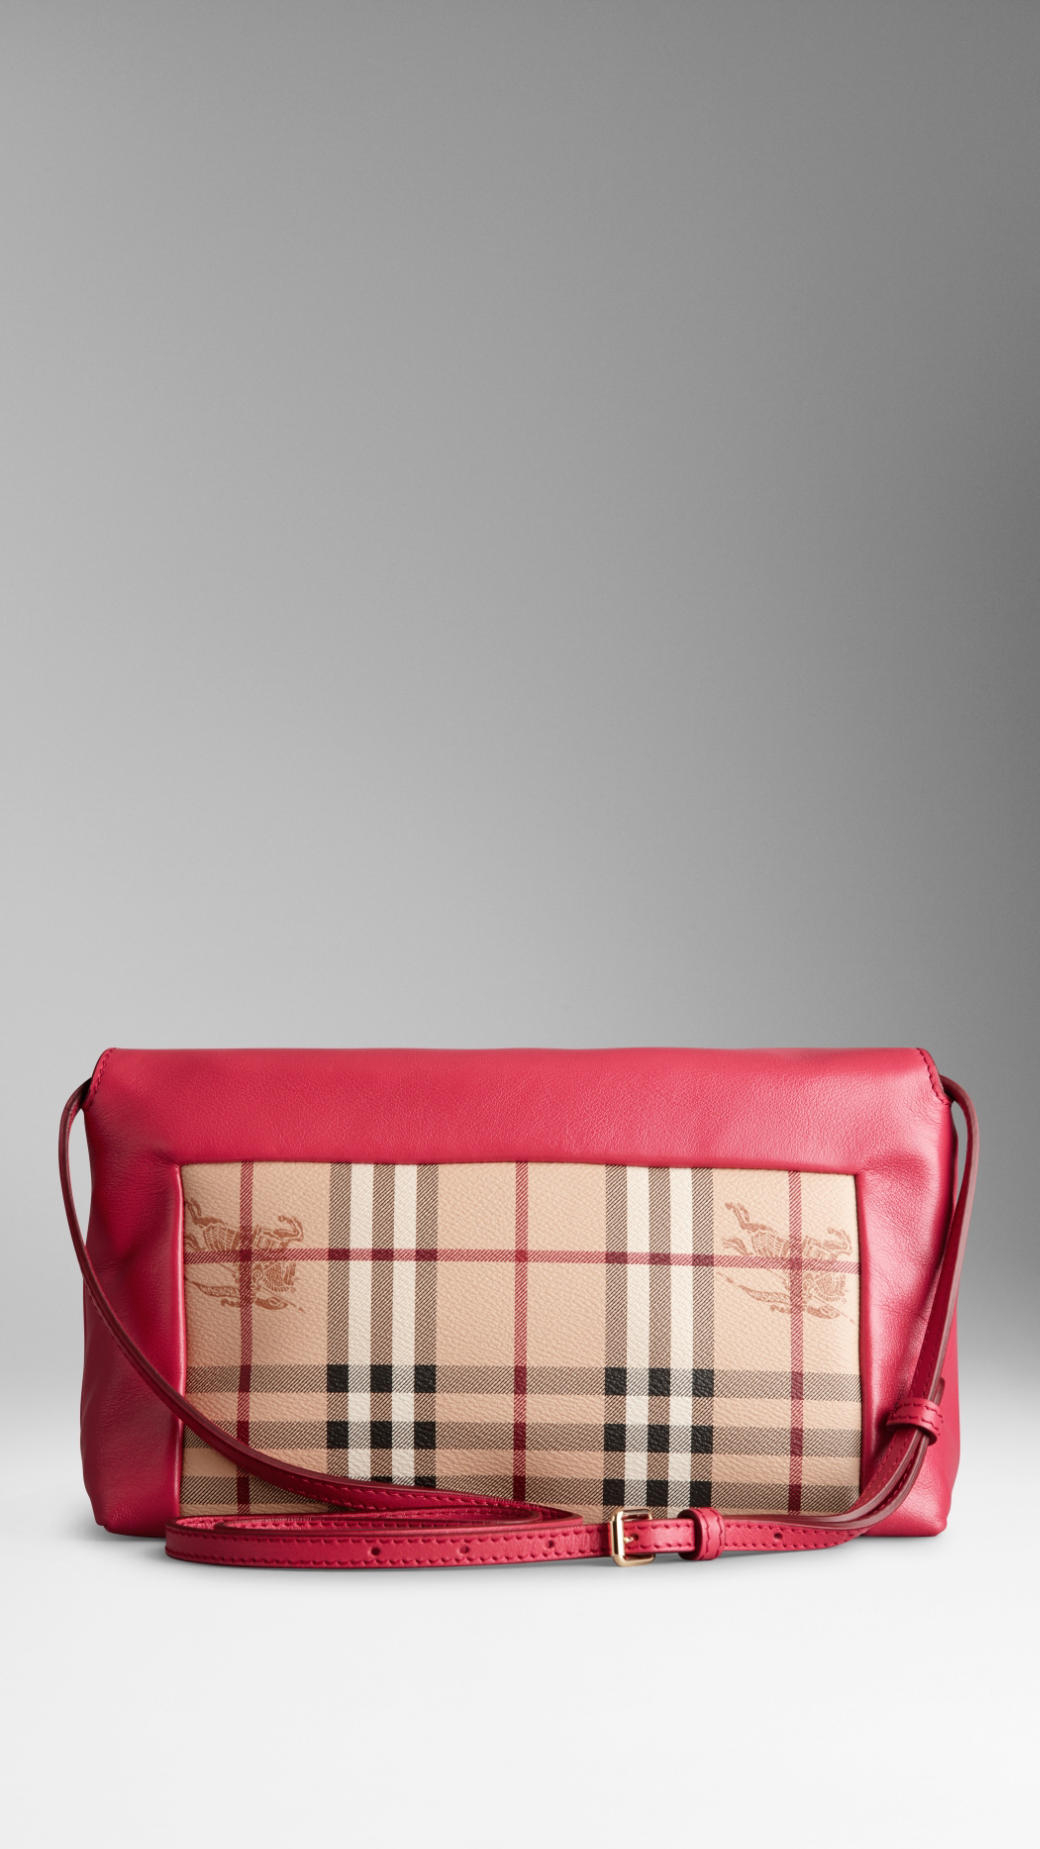 74adf89a6b67 Lyst - Burberry Small Leather and Haymarket Check Clutch Bag in Red